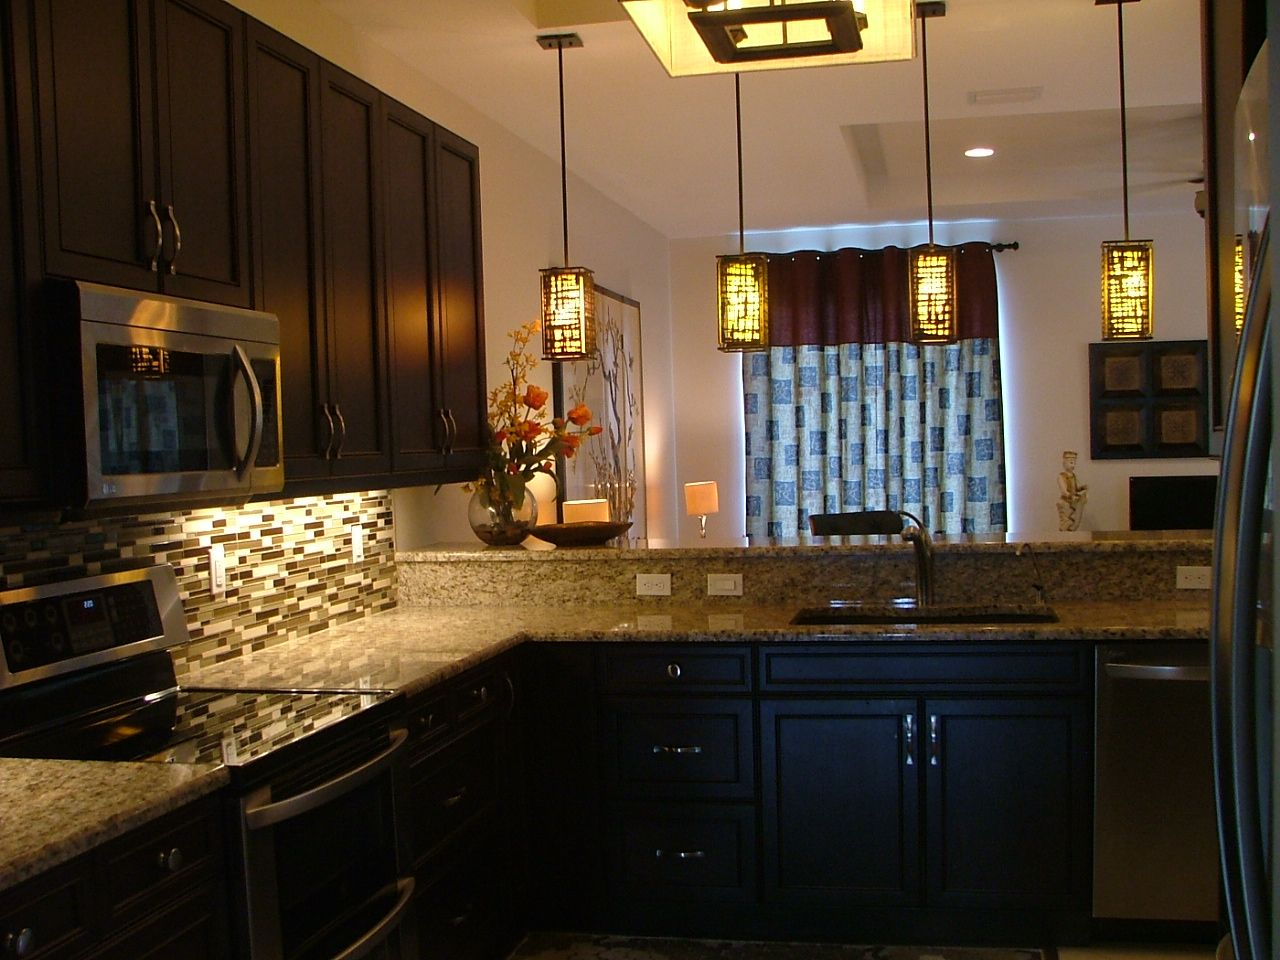 Espresso Cabinets Backsplash Ideas Part - 50: Love The Espresso Cabinets And Backsplash!